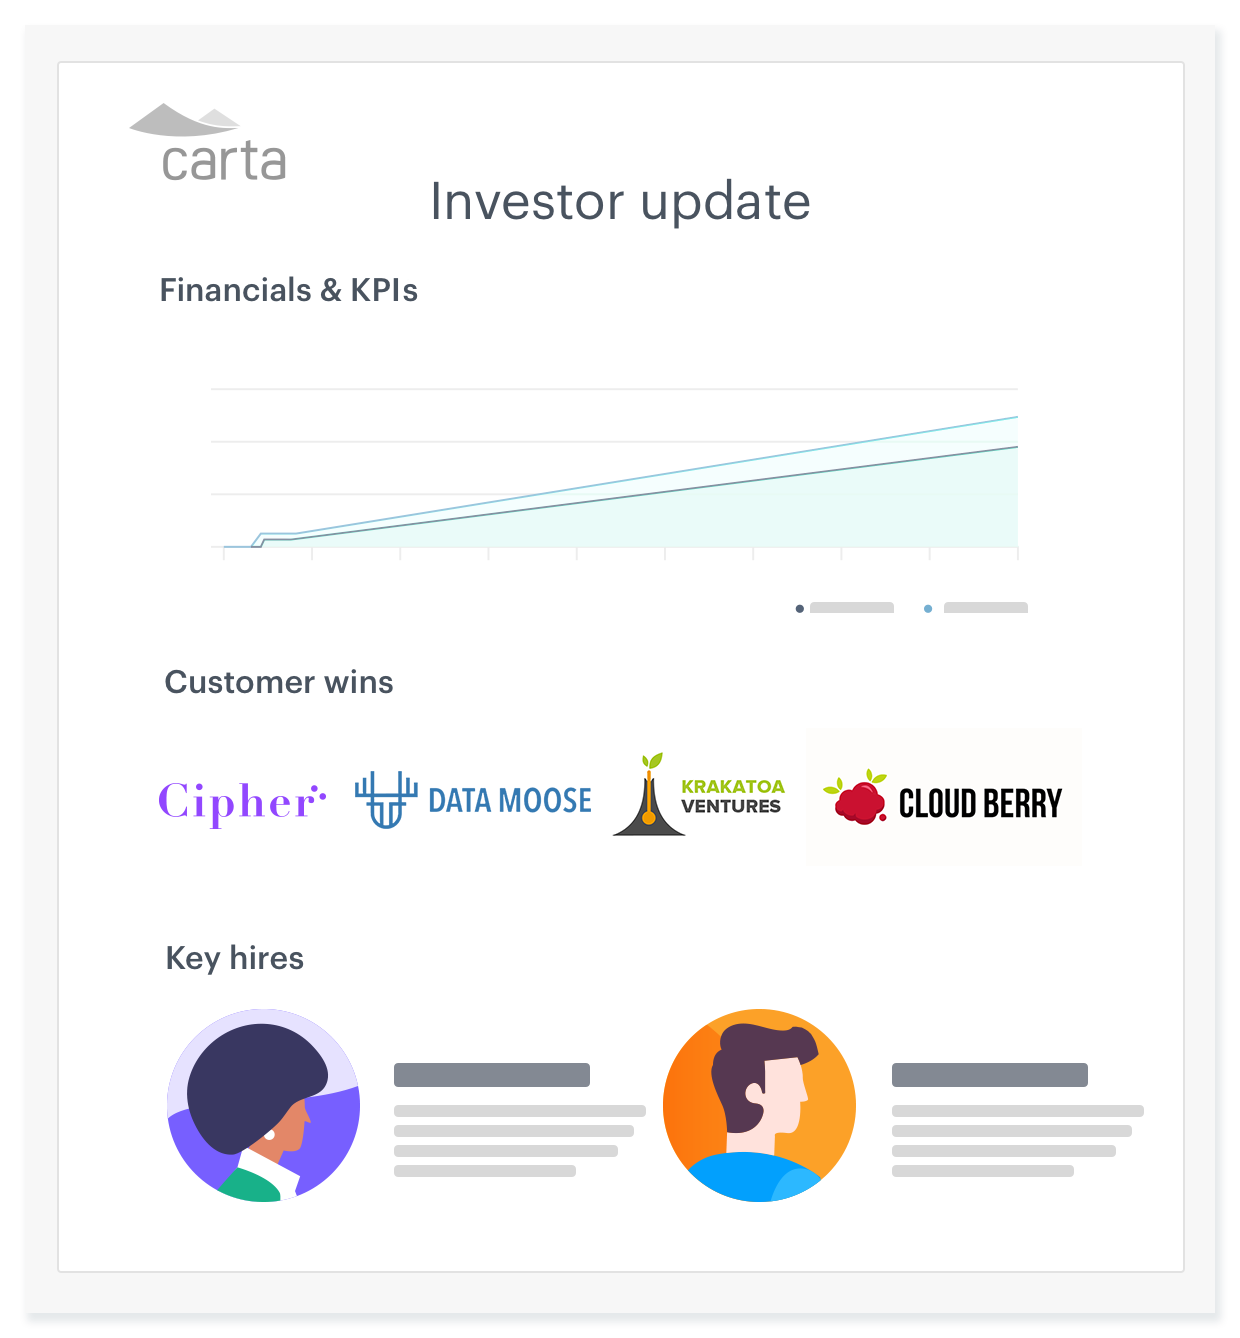 How to write a great investor update 1